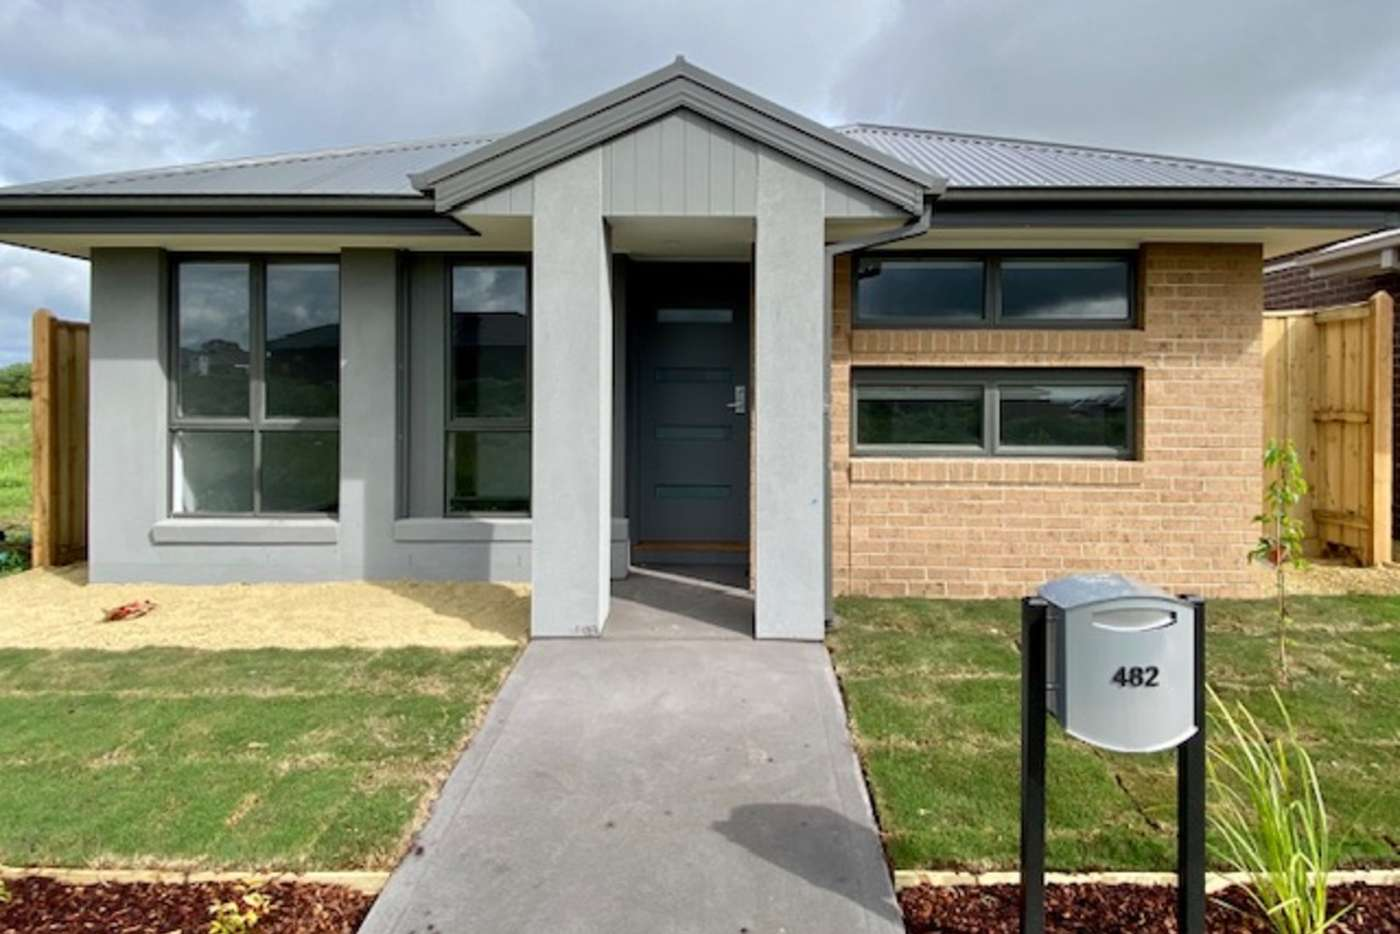 Main view of Homely house listing, 482 Casey Fields Boulevard, Cranbourne East VIC 3977